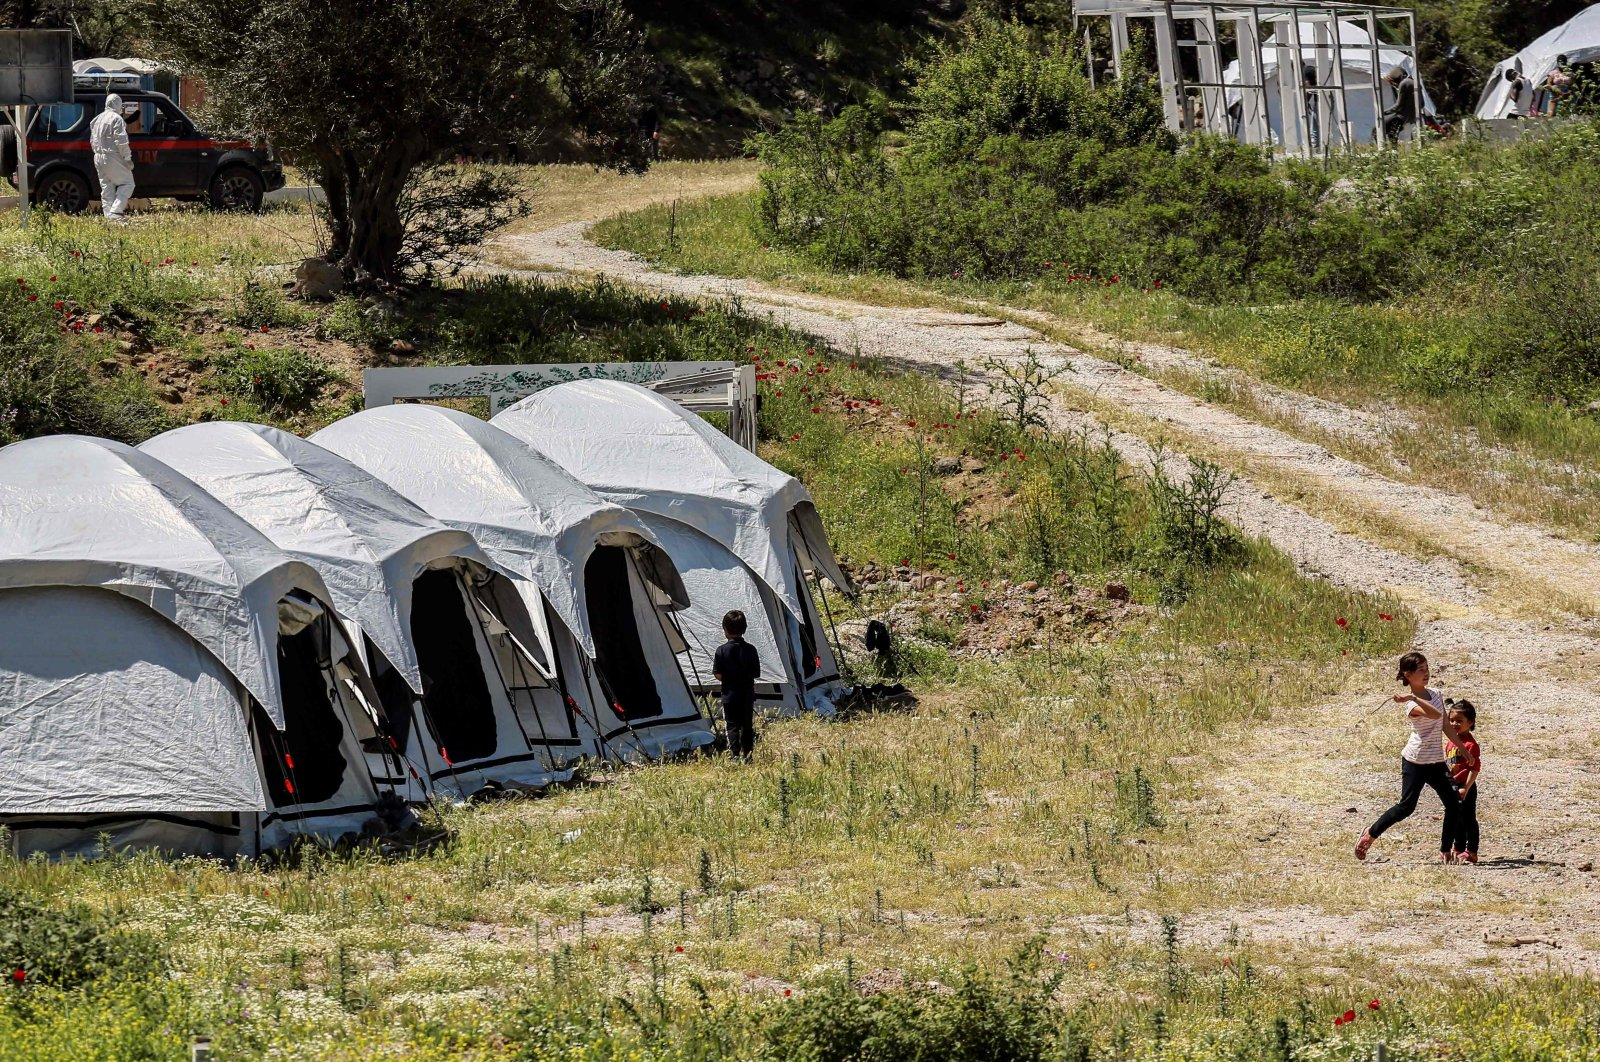 Children play outside the tents at a migrant and refugee camp where cases of COVID-19 were detected, on the Greek island of Lesbos, on May 13, 2020, as the country faces the novel coronavirus pandemic. (AFP Photo)